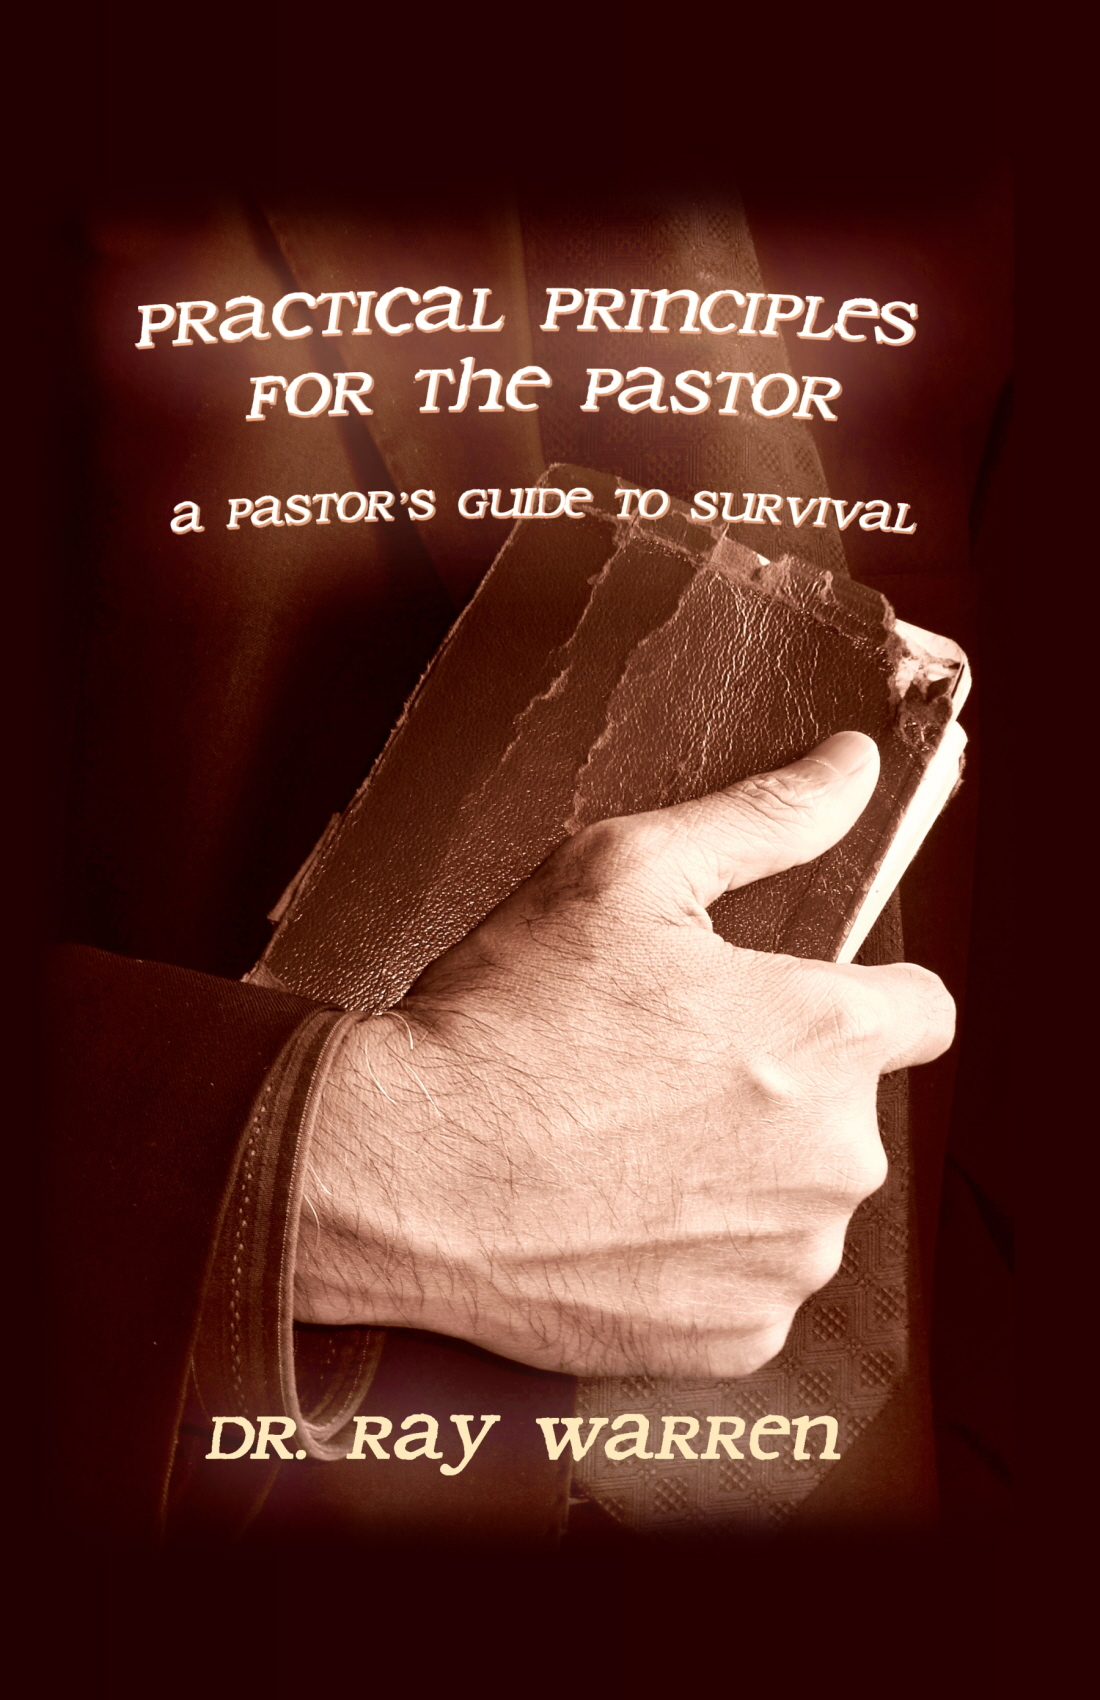 Practical Principles for the Pastor